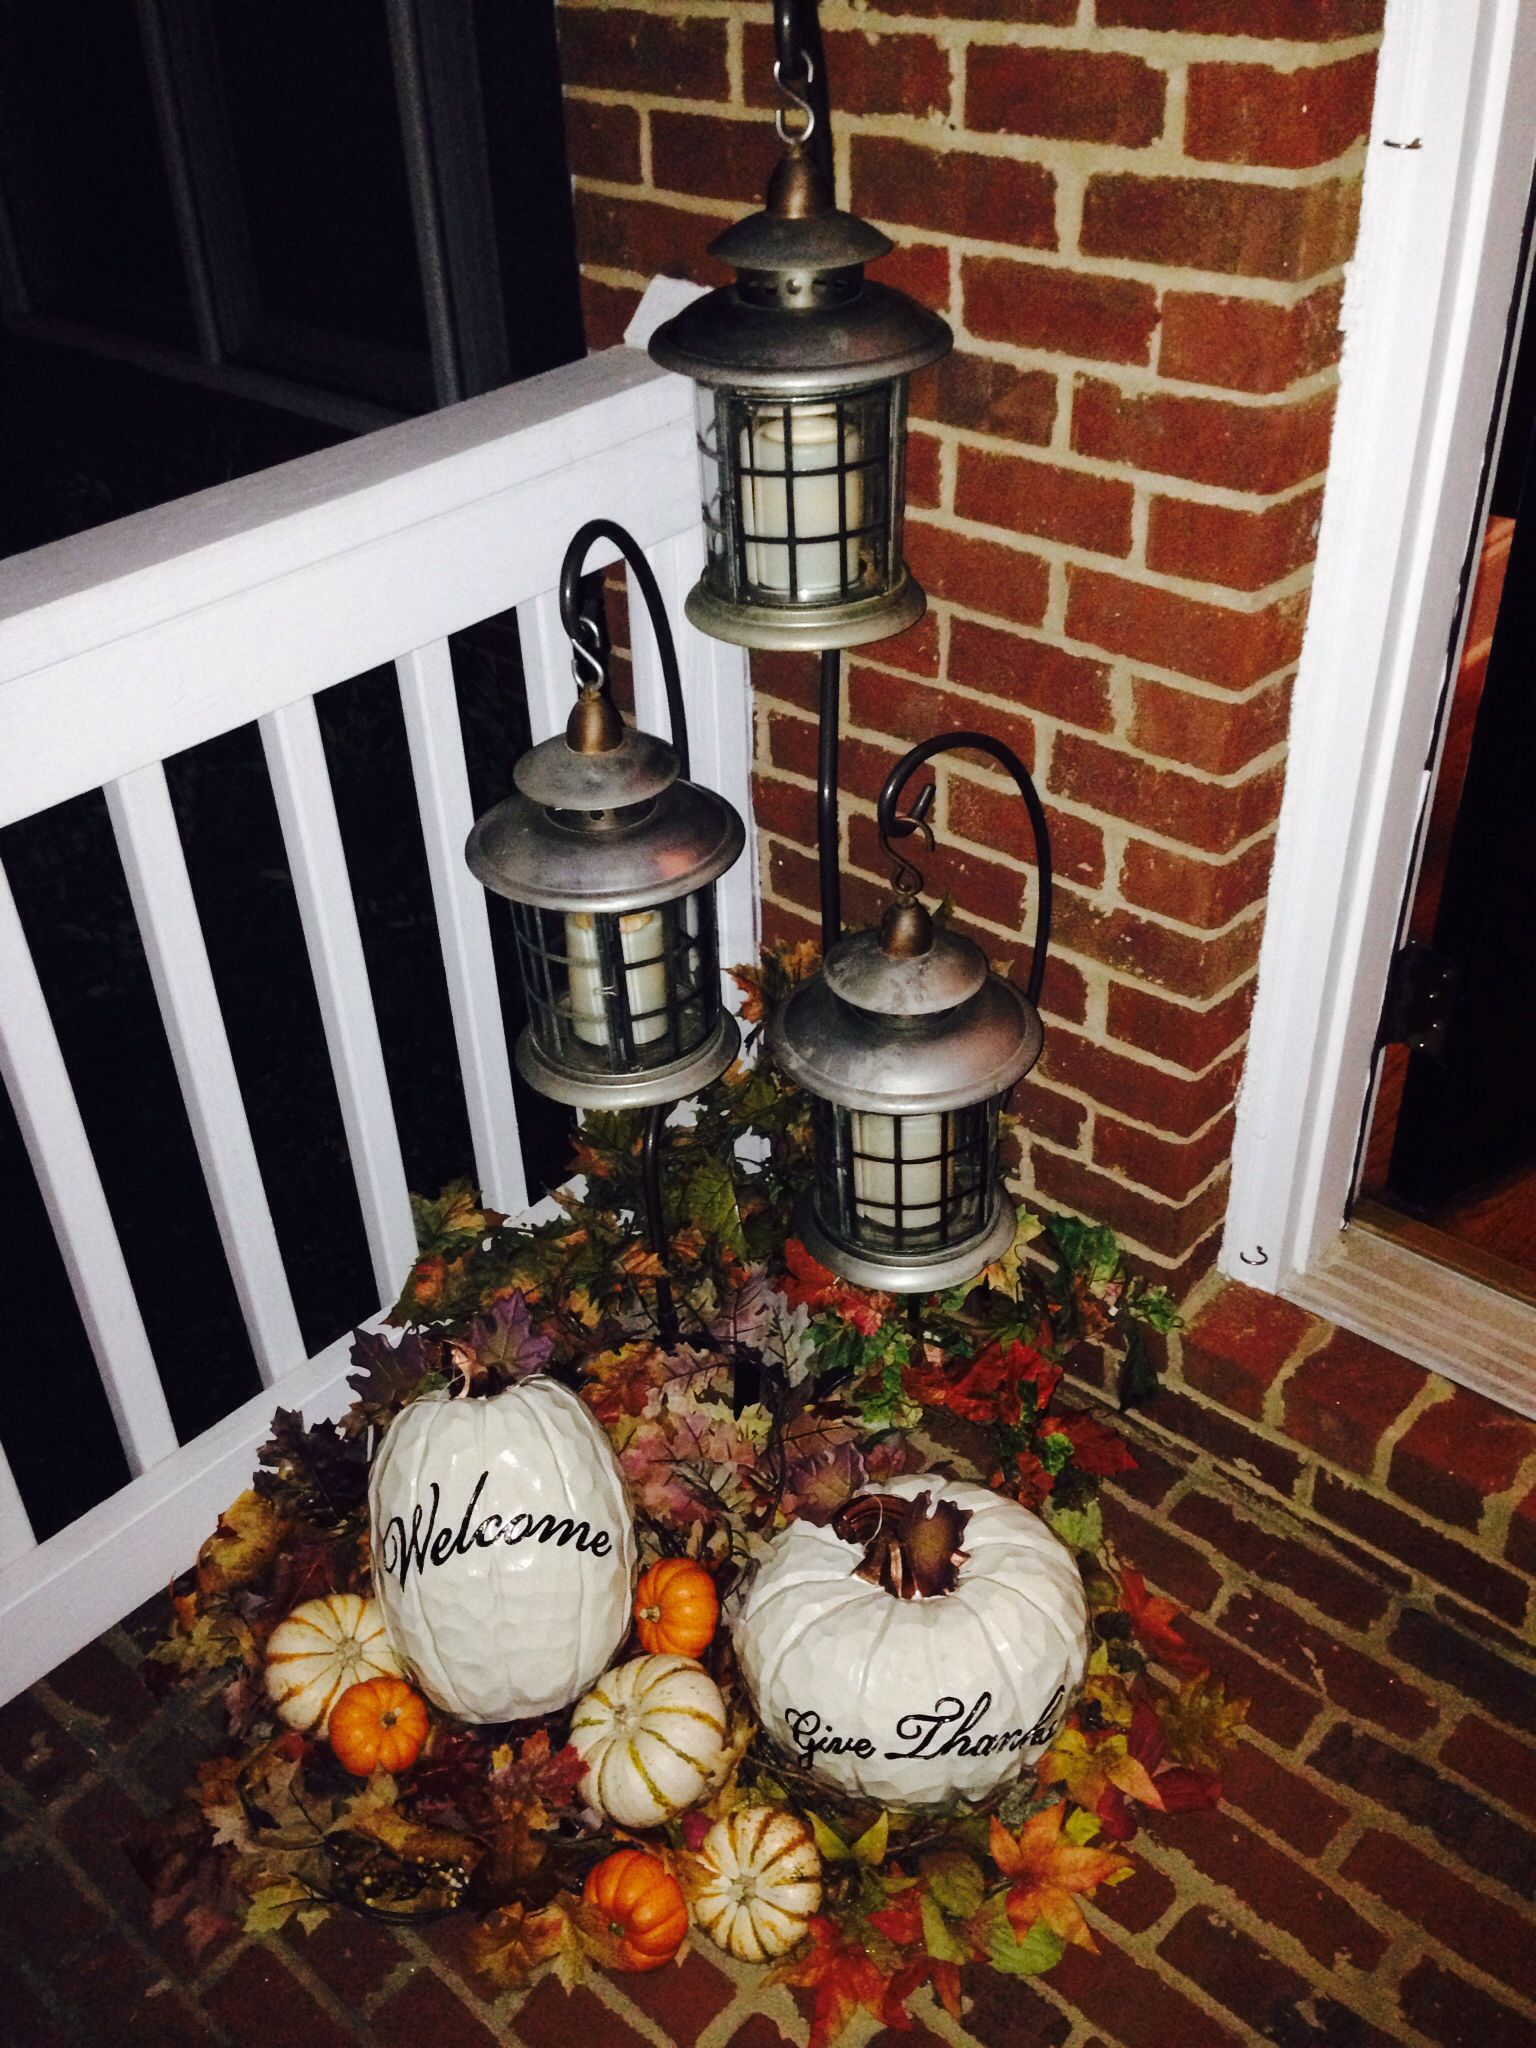 Refurbished old orange pumpkins and lanterns for a fresh fall/harvest look!  Happy Thanksgiving!  It's almost that time!